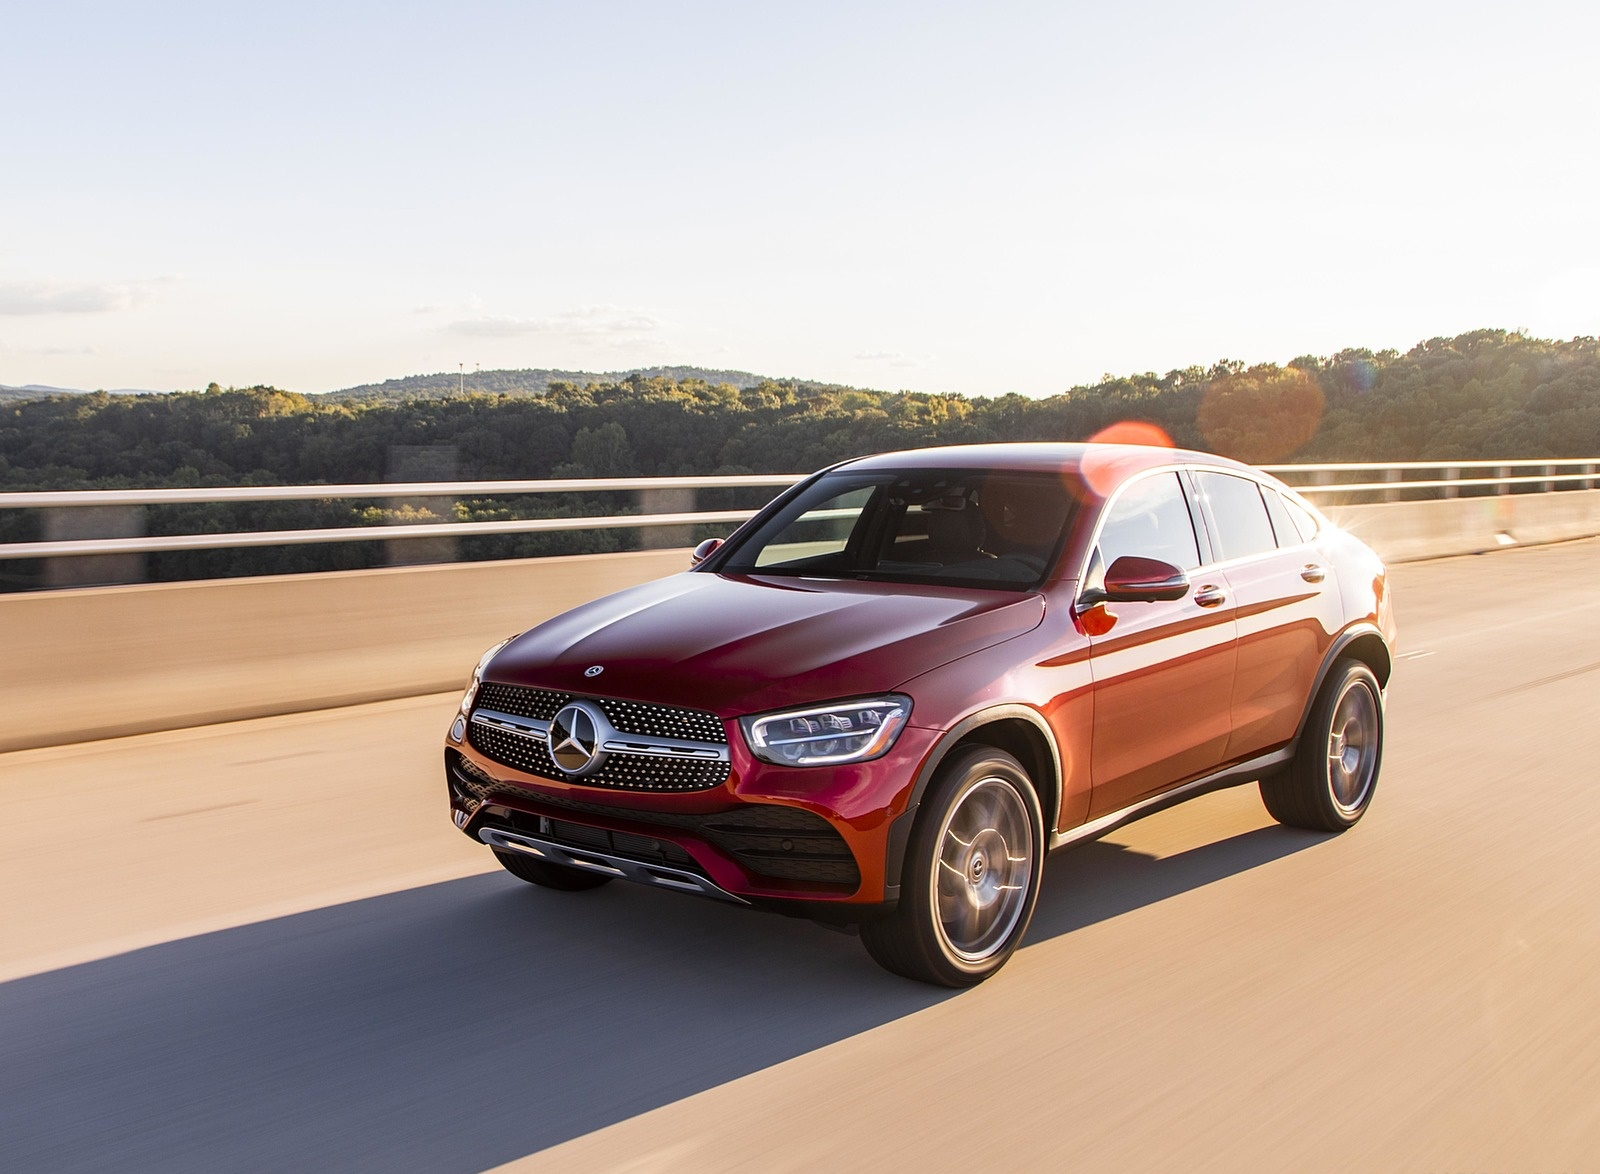 2020 Mercedes-Benz GLC 300 Coupe (US-Spec) Front Three-Quarter Wallpapers (8)